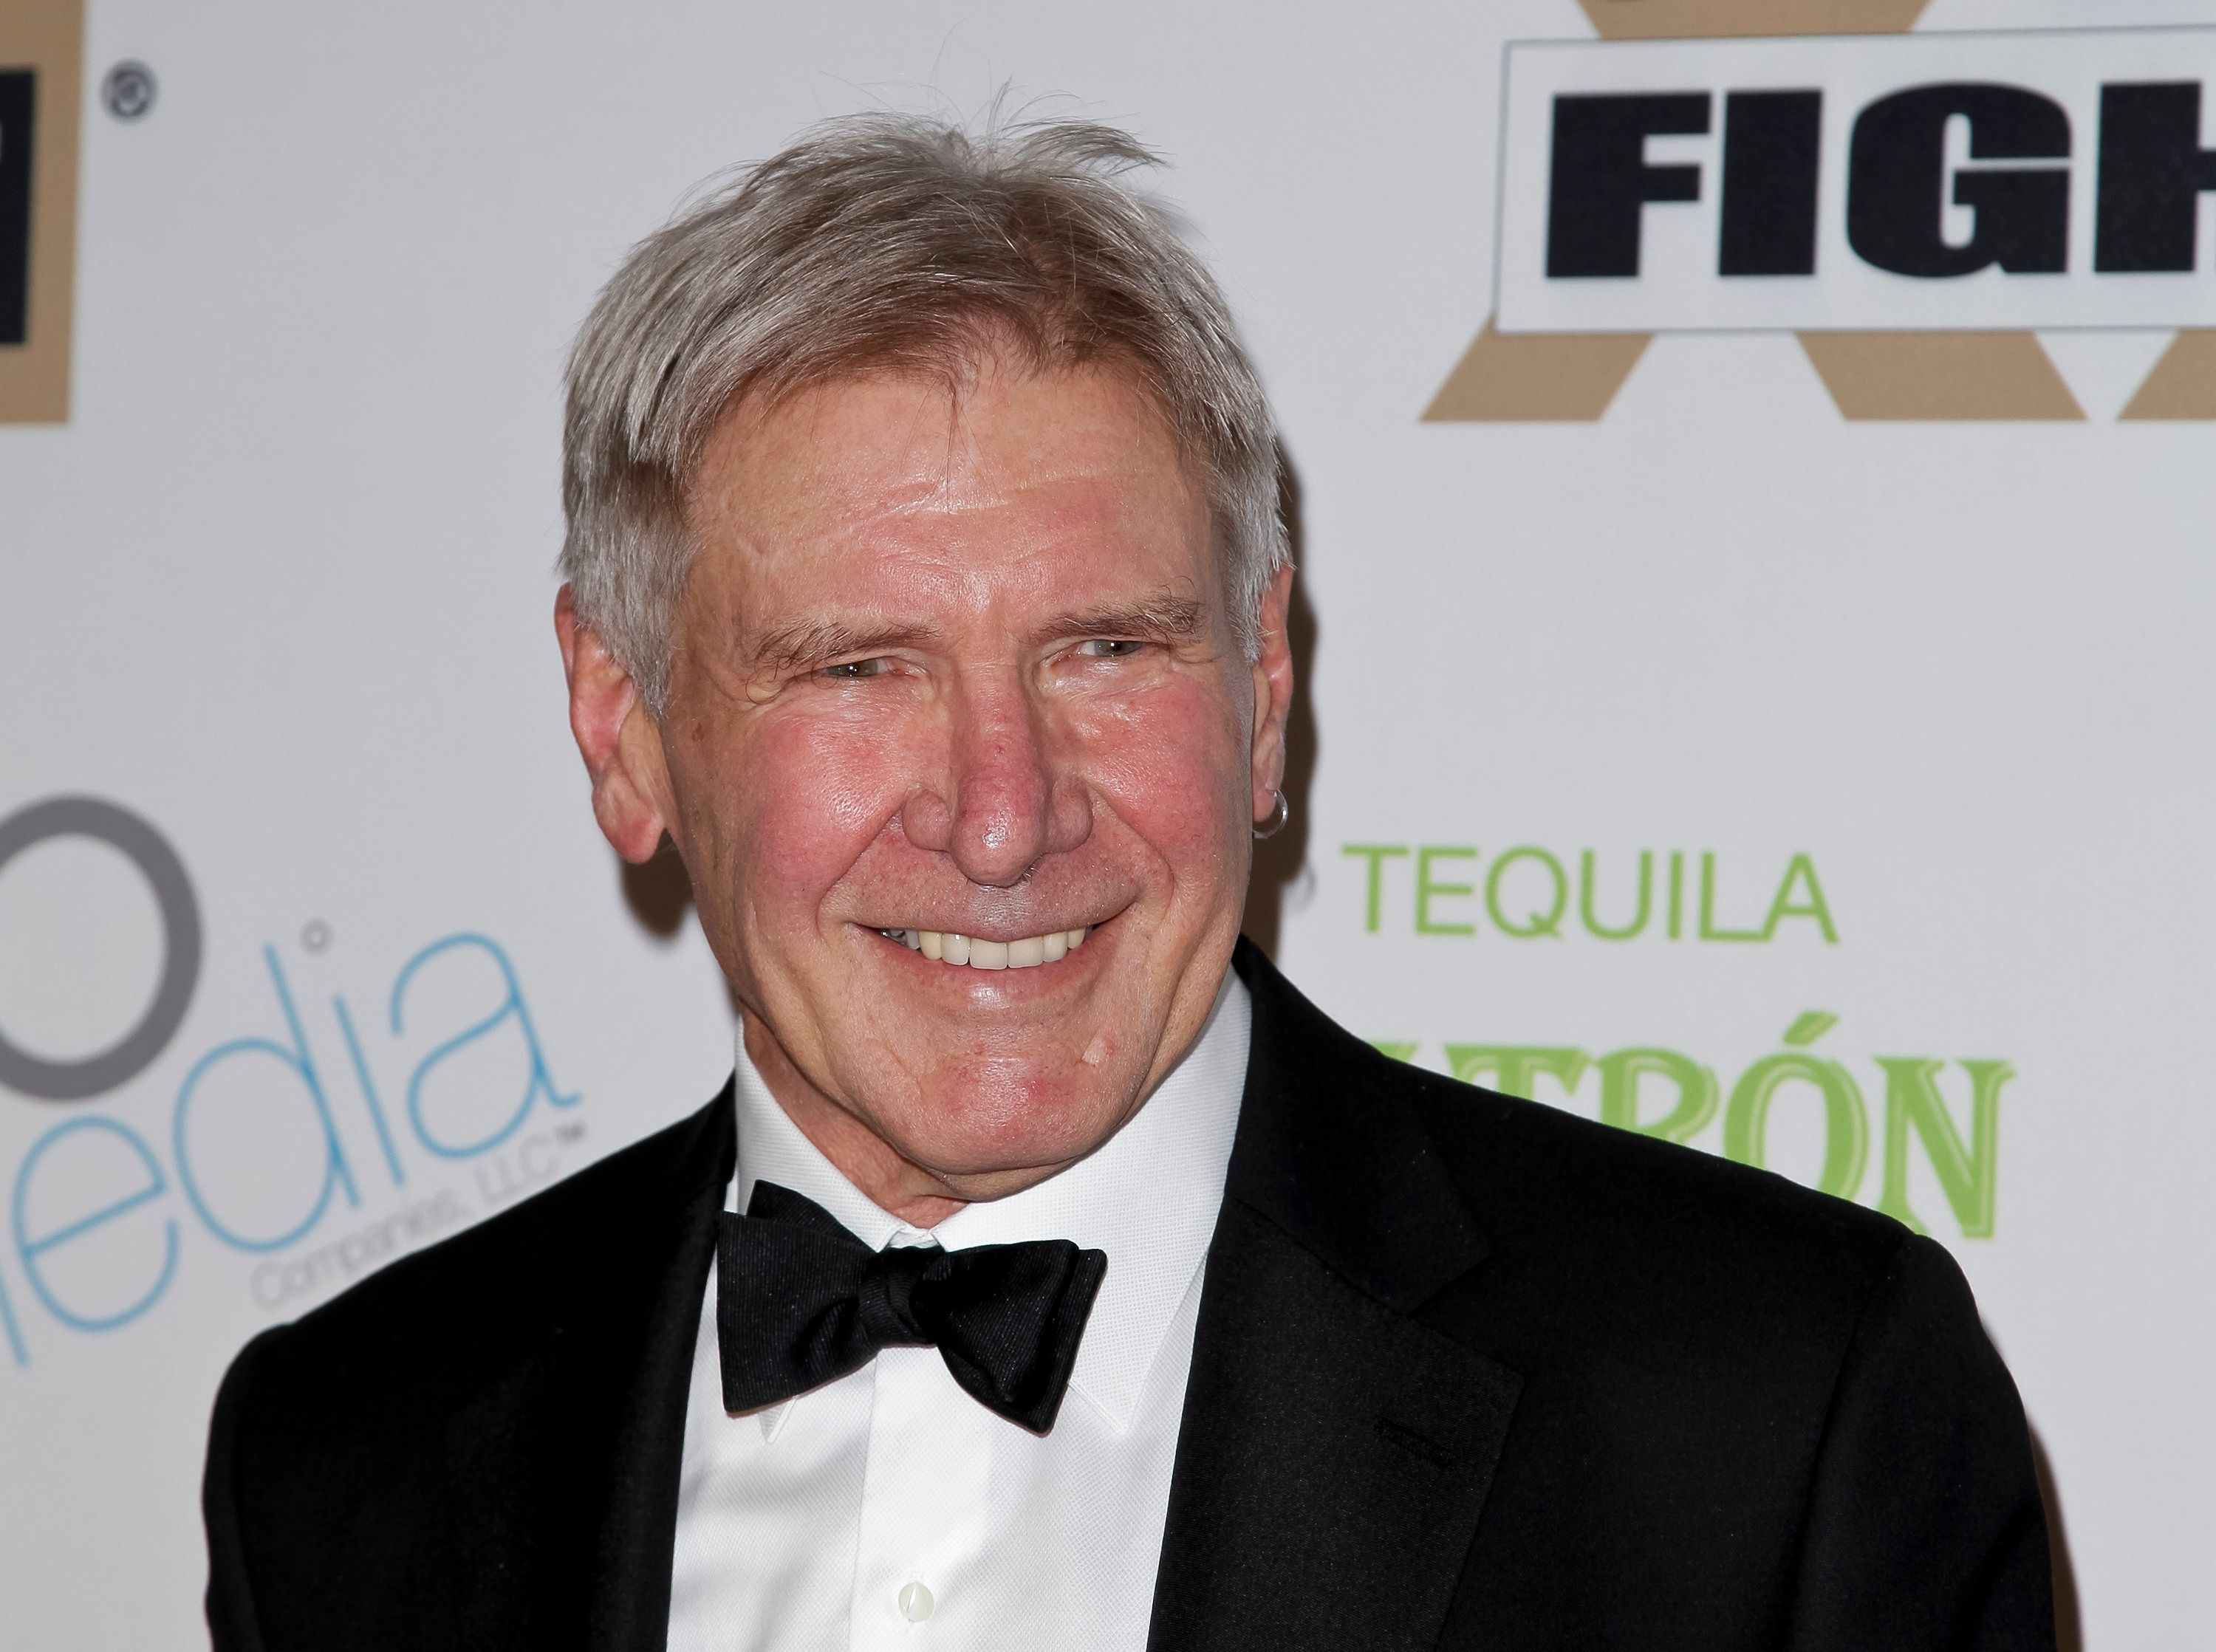 Harrison Ford Faces No Penalties After Nearly Colliding With Passenger